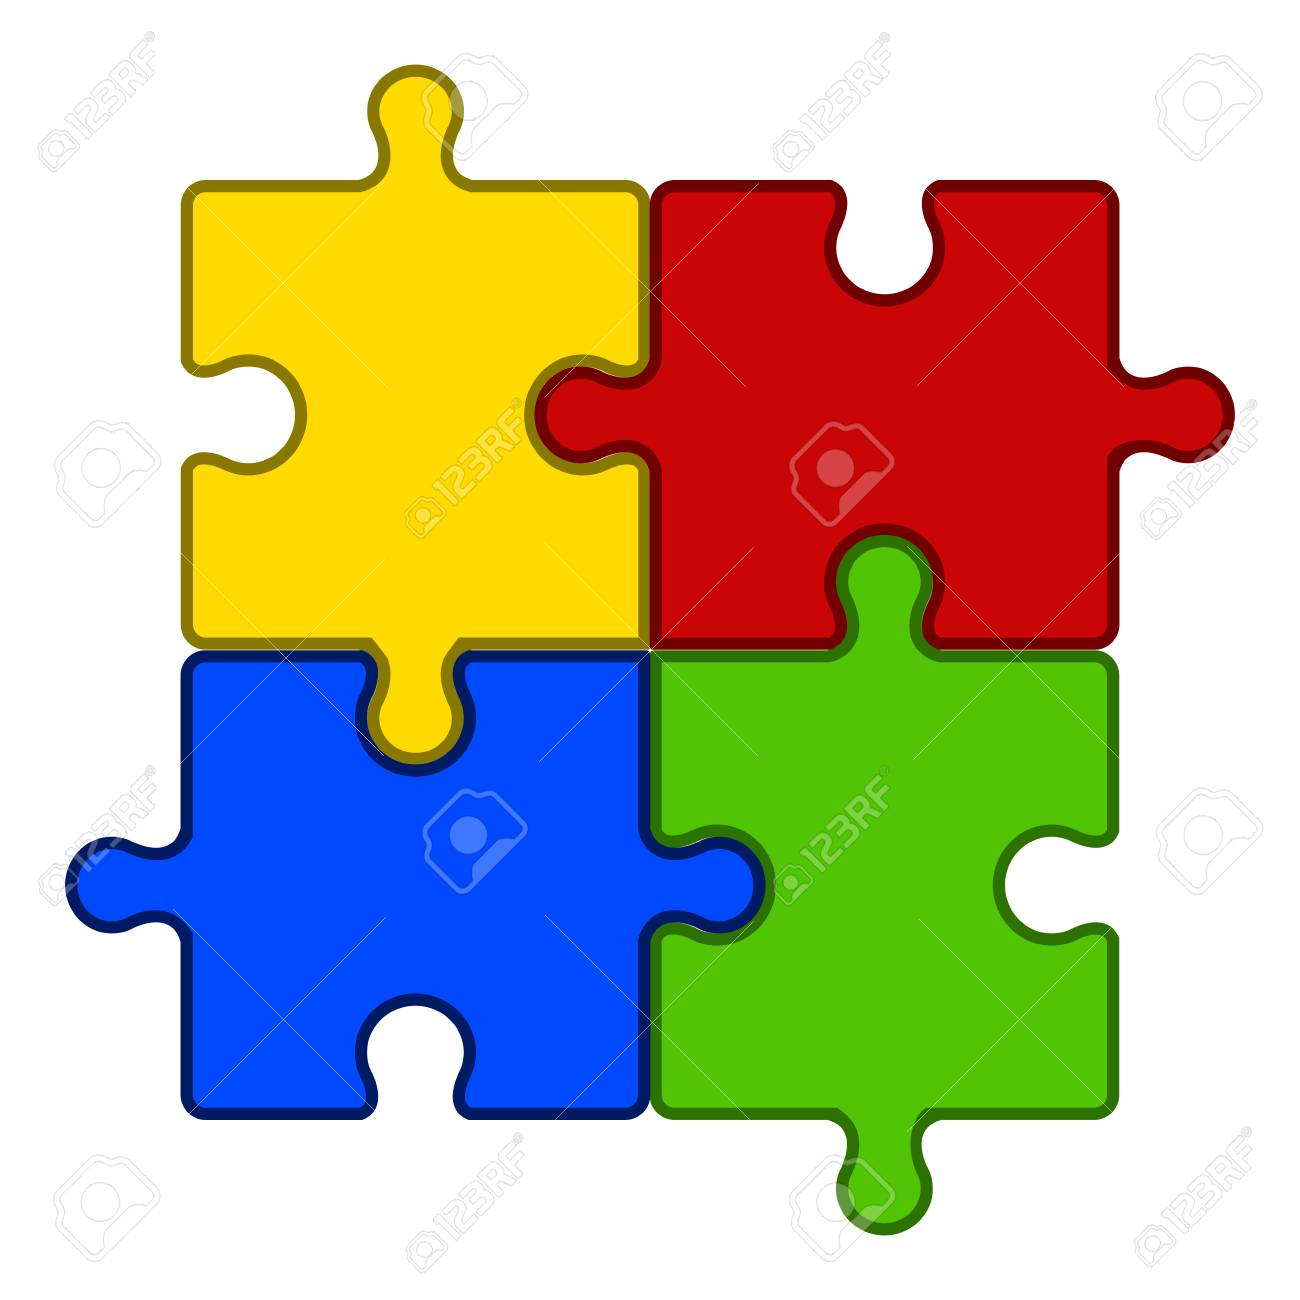 Jigsaw Puzzle Pieces Teamwork Concept Image Vector Illustration Design Stock